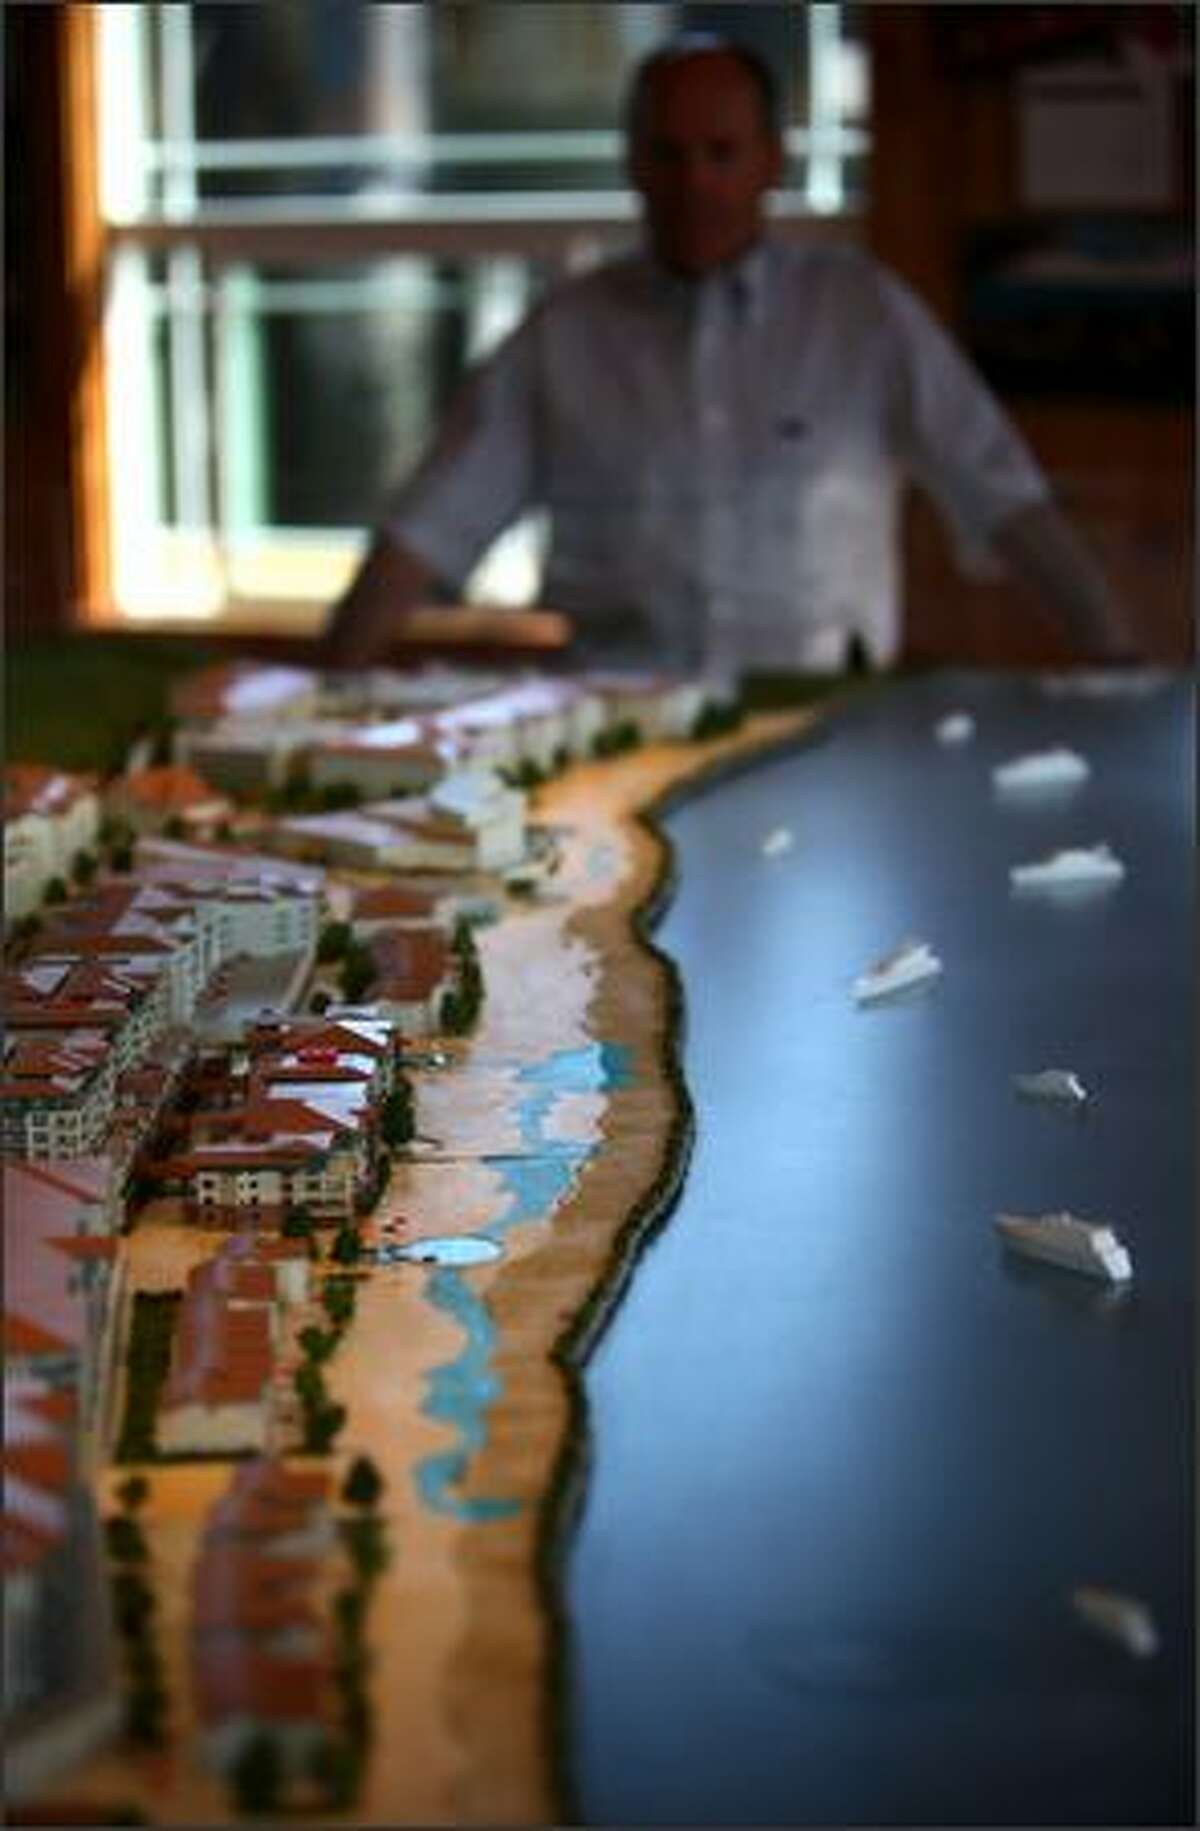 A model of the waterfront development is shown aboard the M/V Steilacoom ferry.